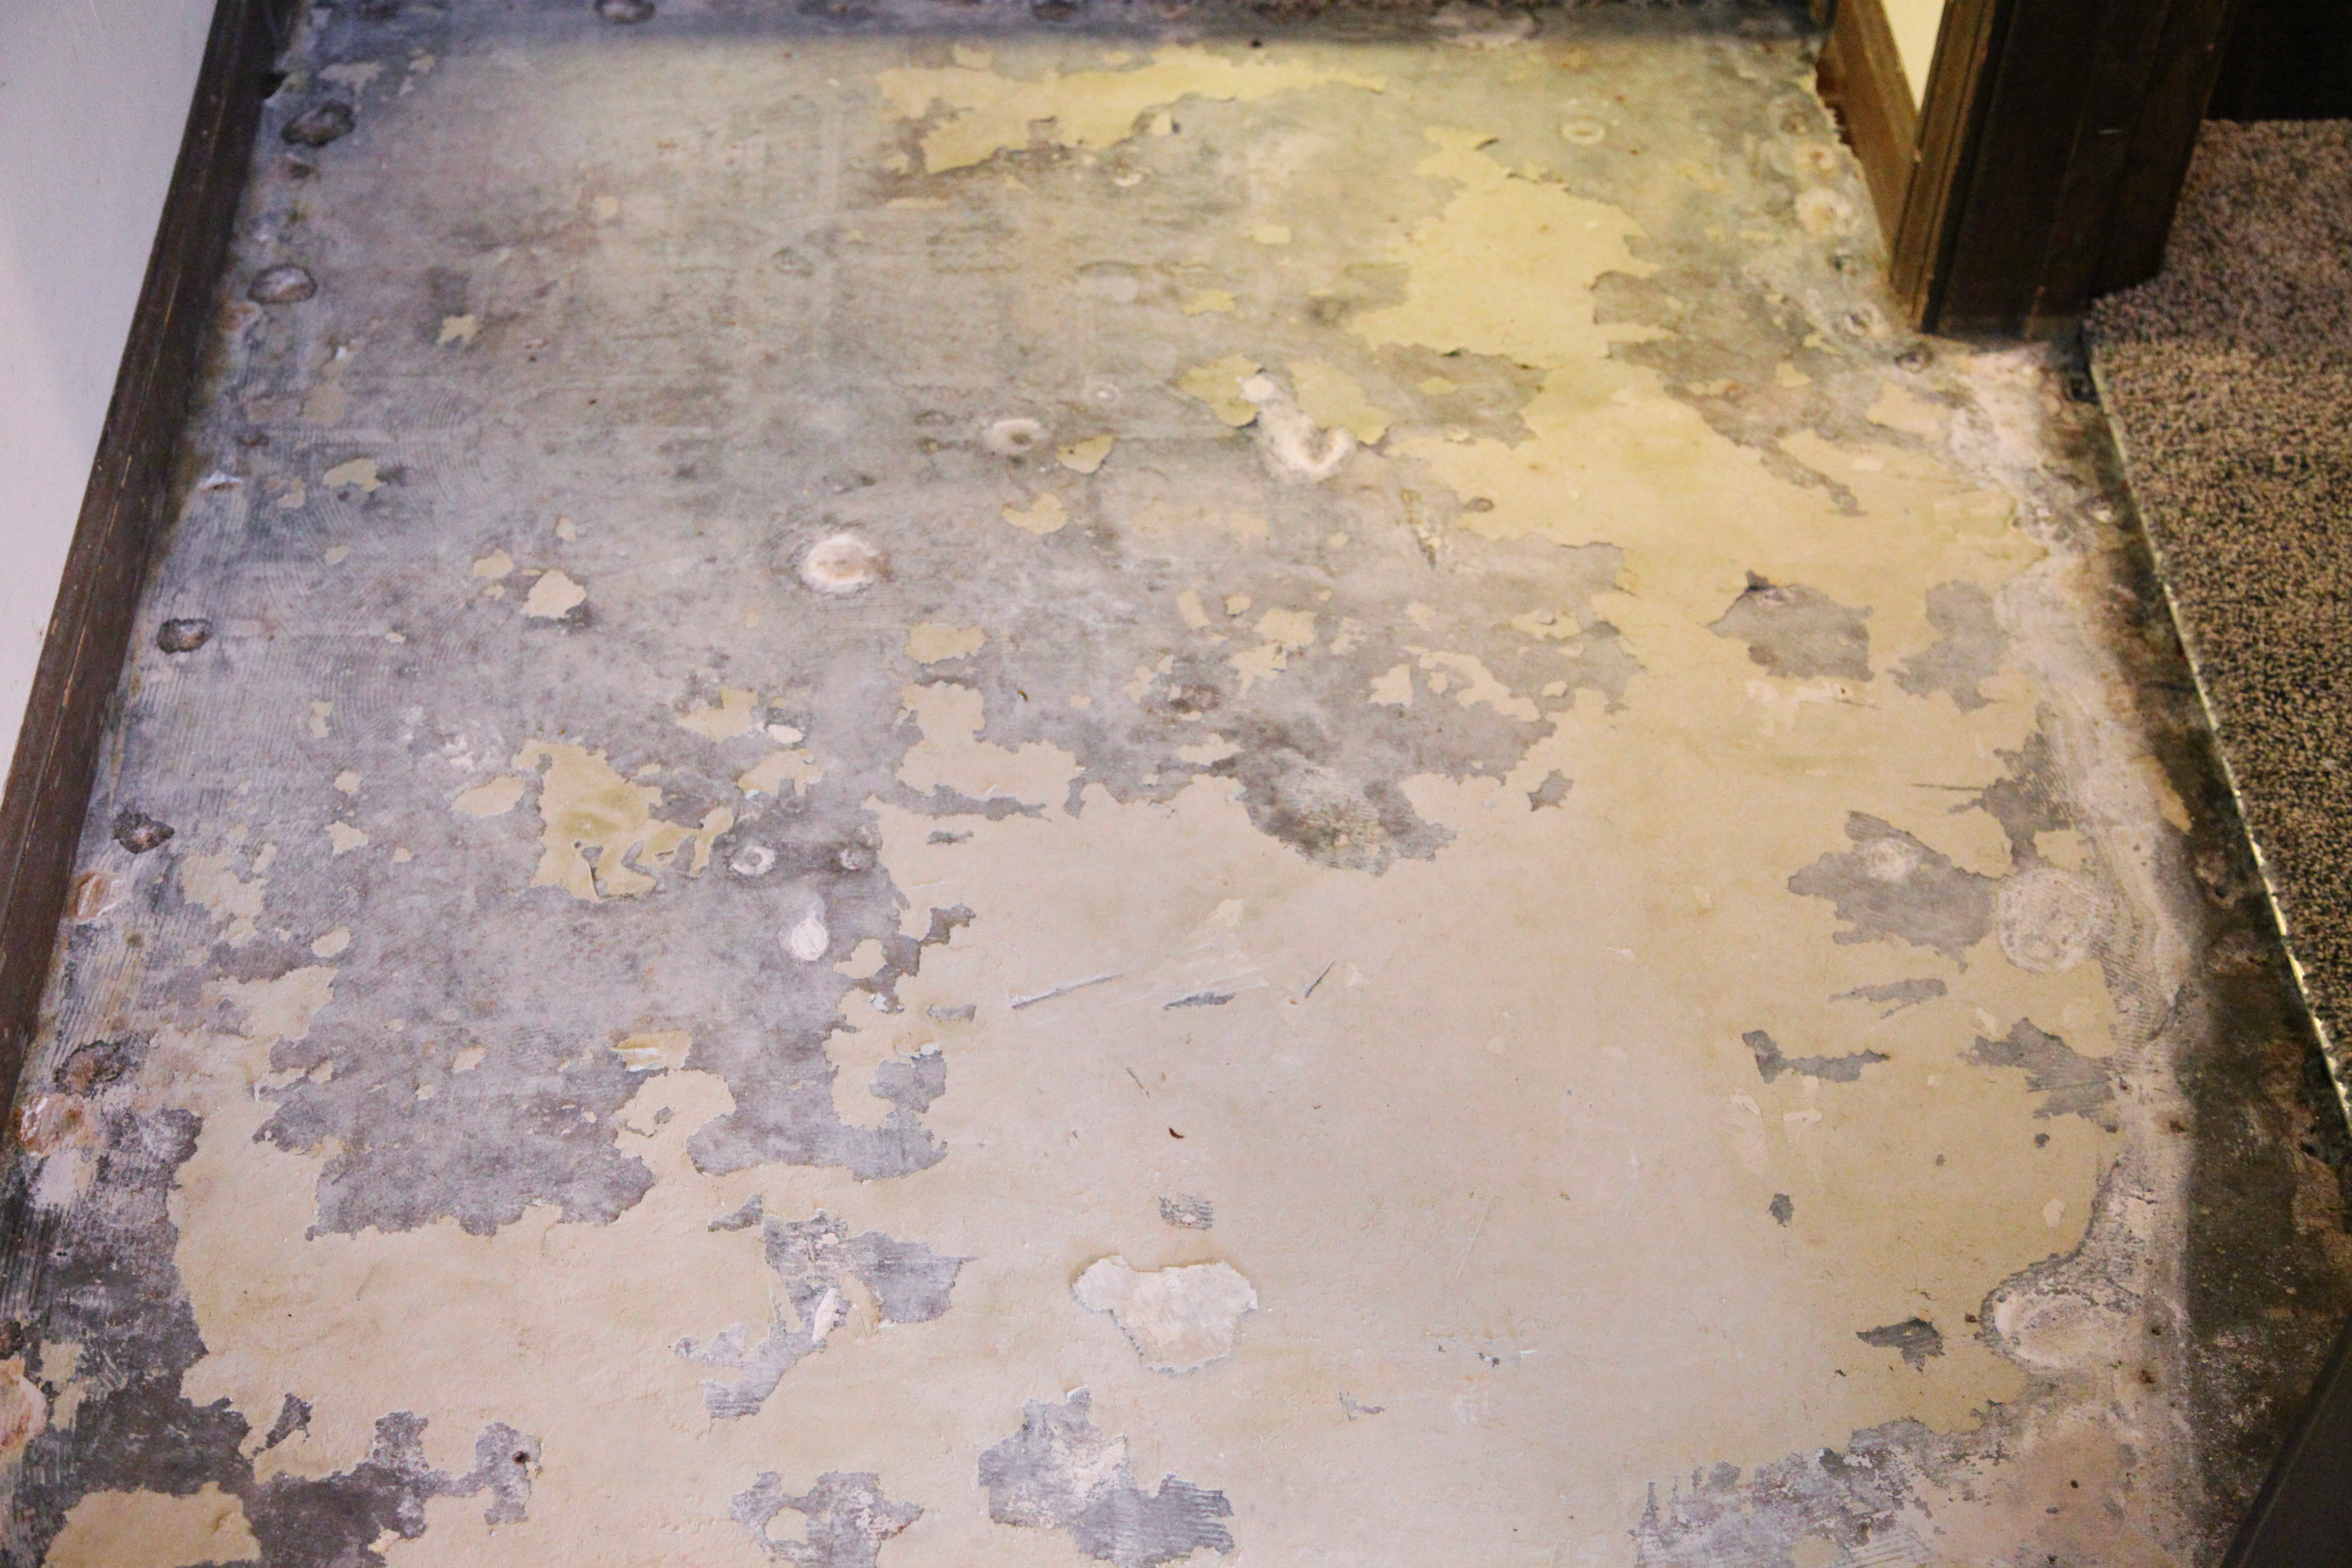 Removing vinyl laminate flooring from a concrete subfloor with water and a 5 in 1 tool